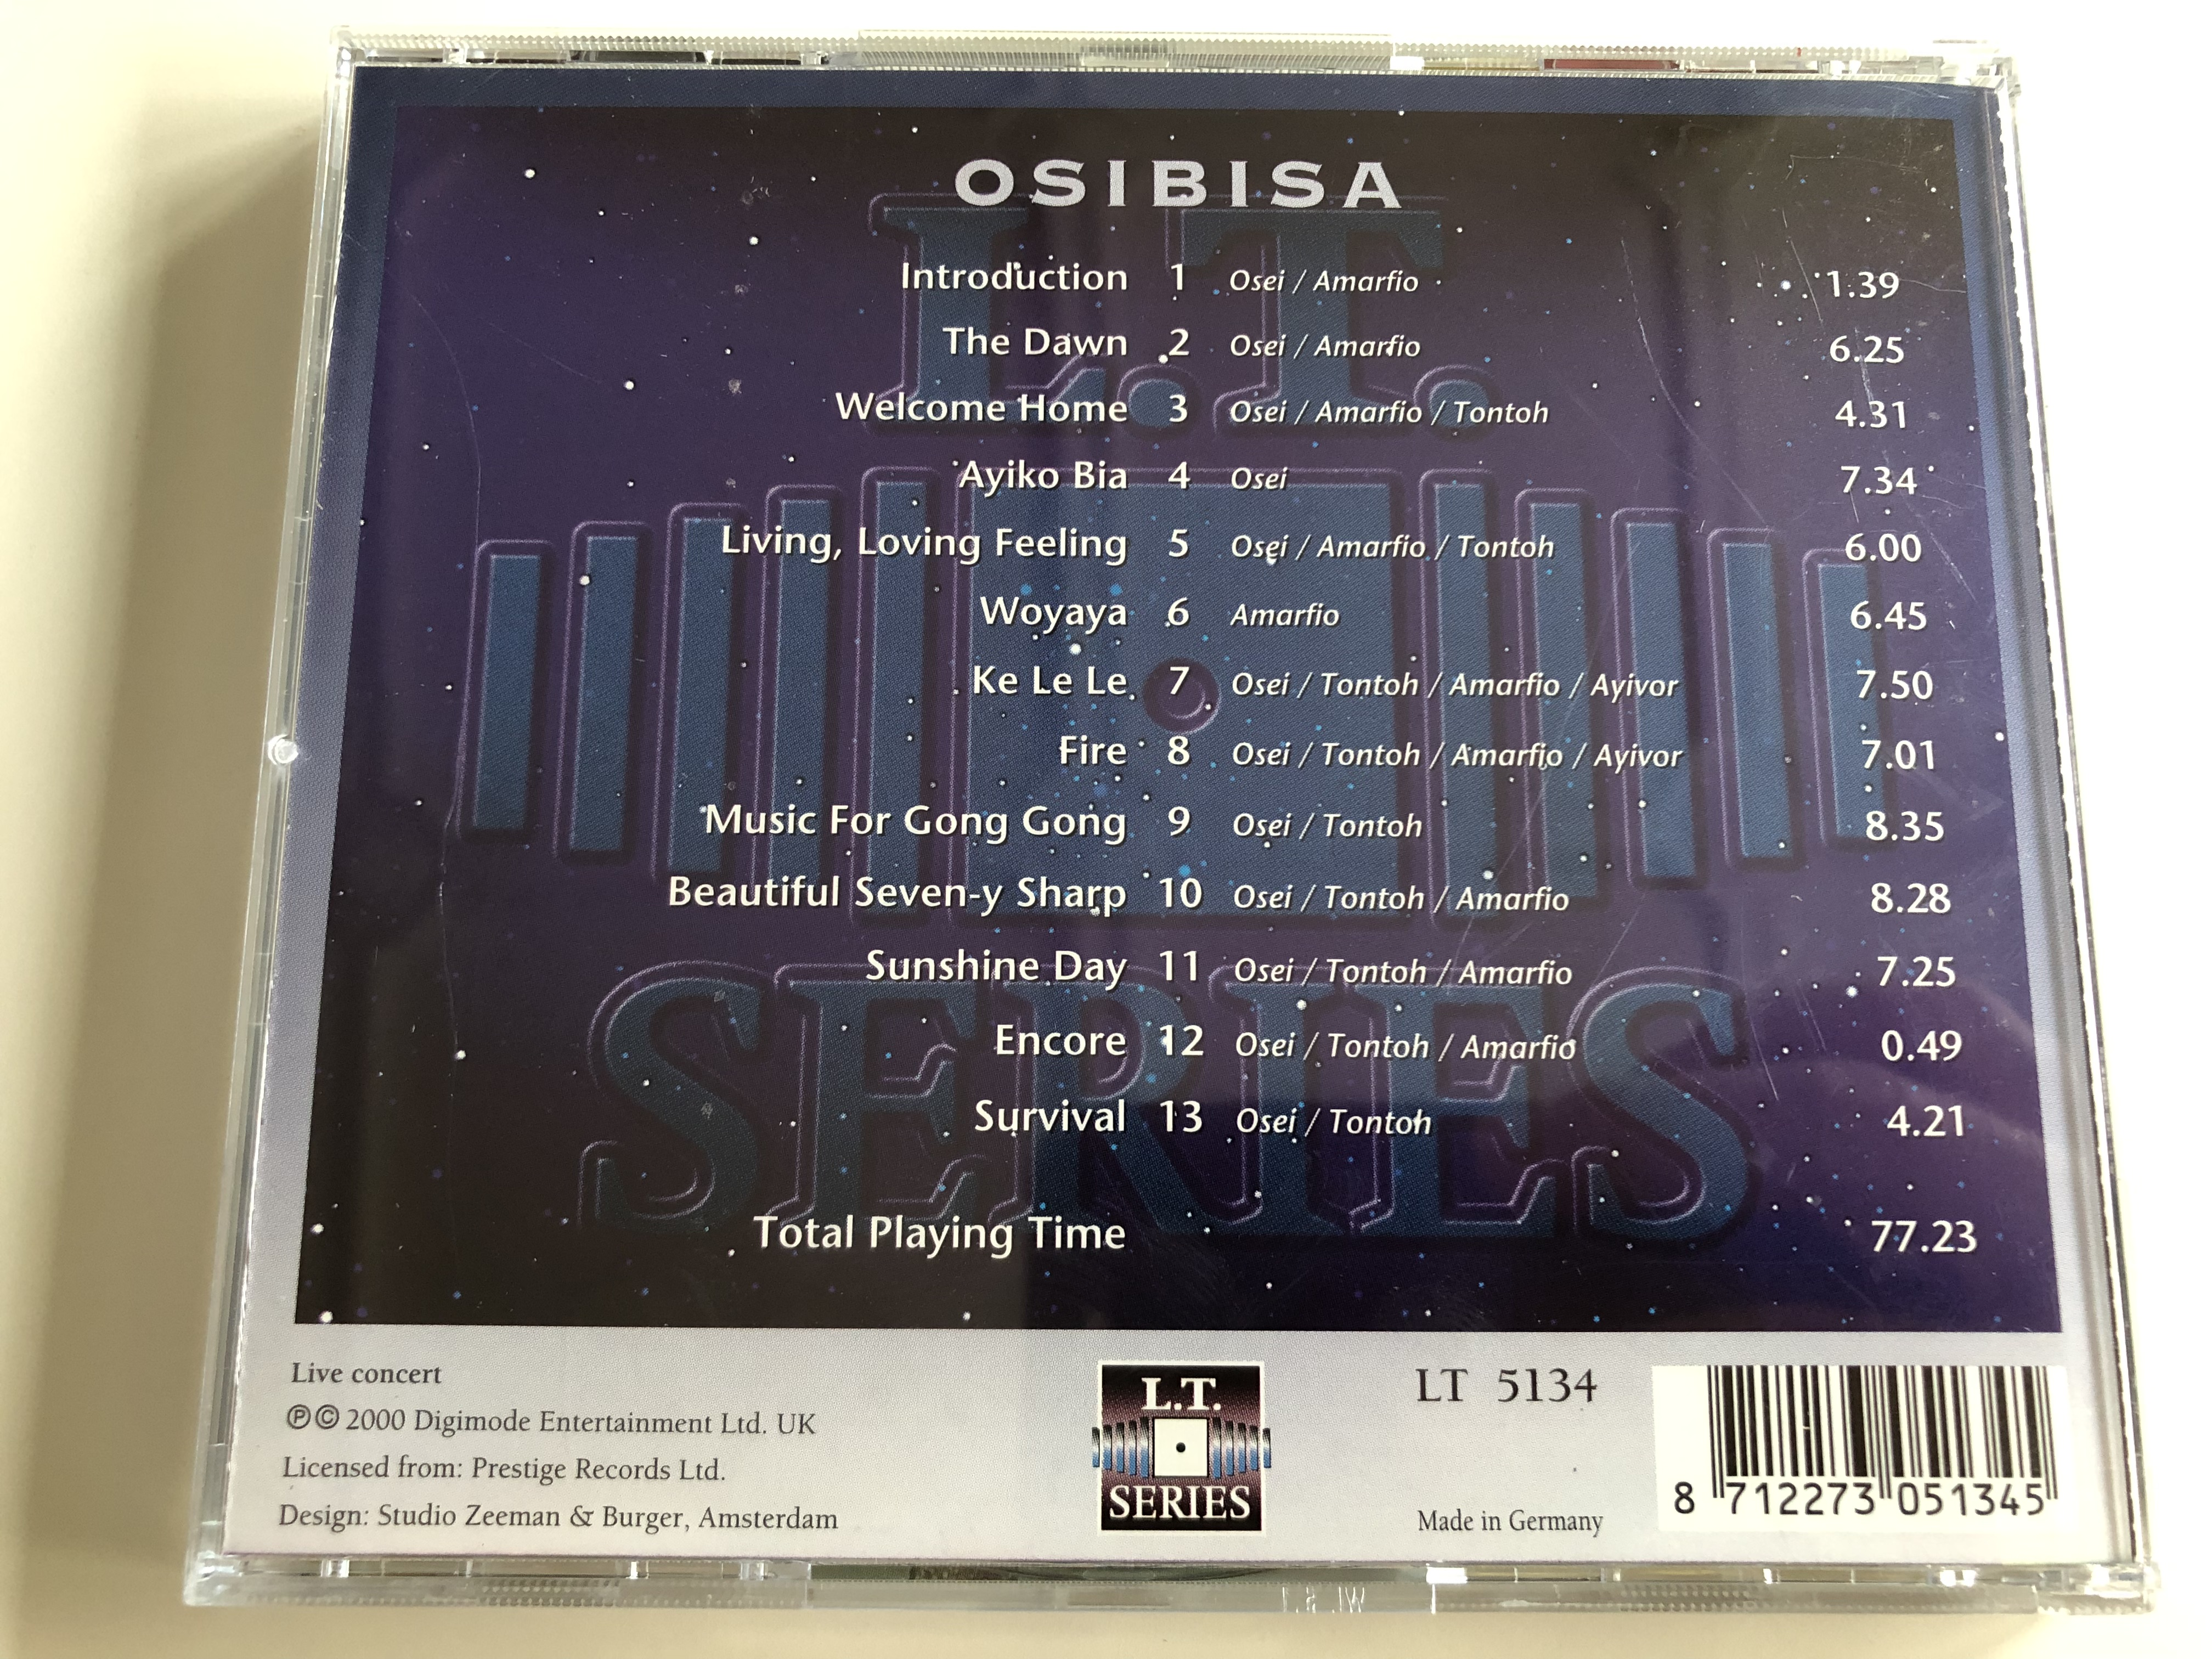 osibisa-sunshine-day-live-concert-welcome-home-ayiko-bia-living-loving-feeling-fire-encore-survival-audio-cd-2000-lt-5134-2-.jpg